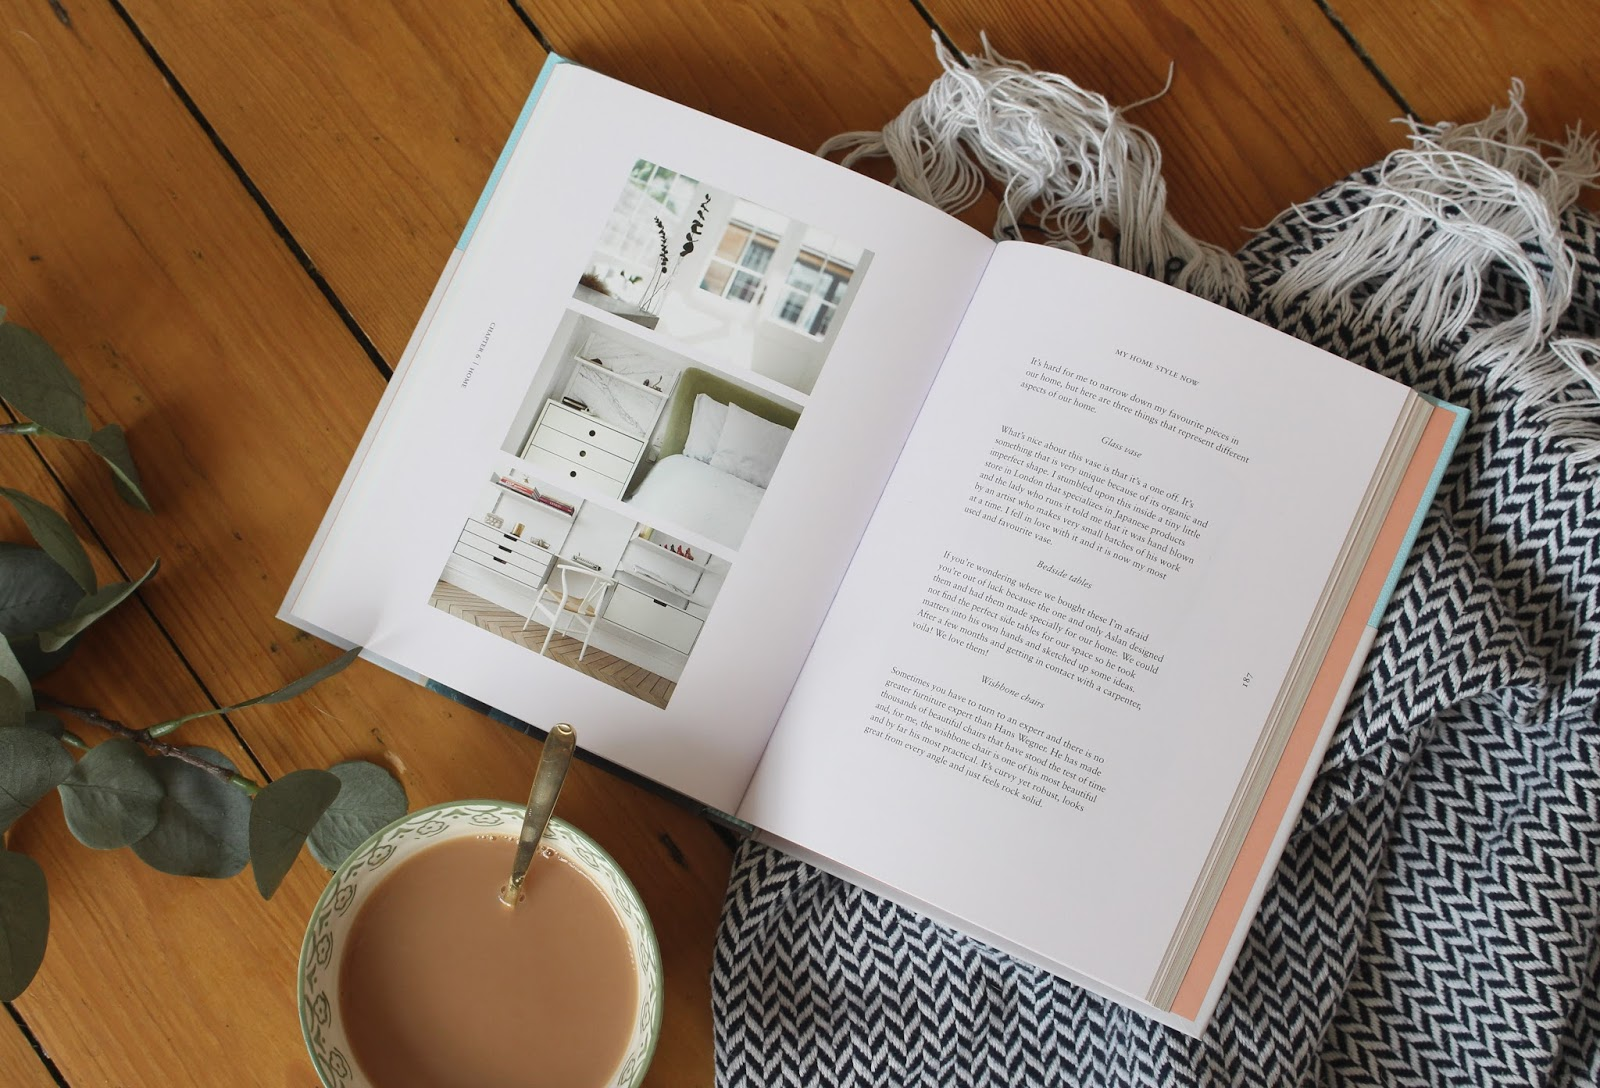 who doesn't love to sit down with a good book and a cup of tea...?